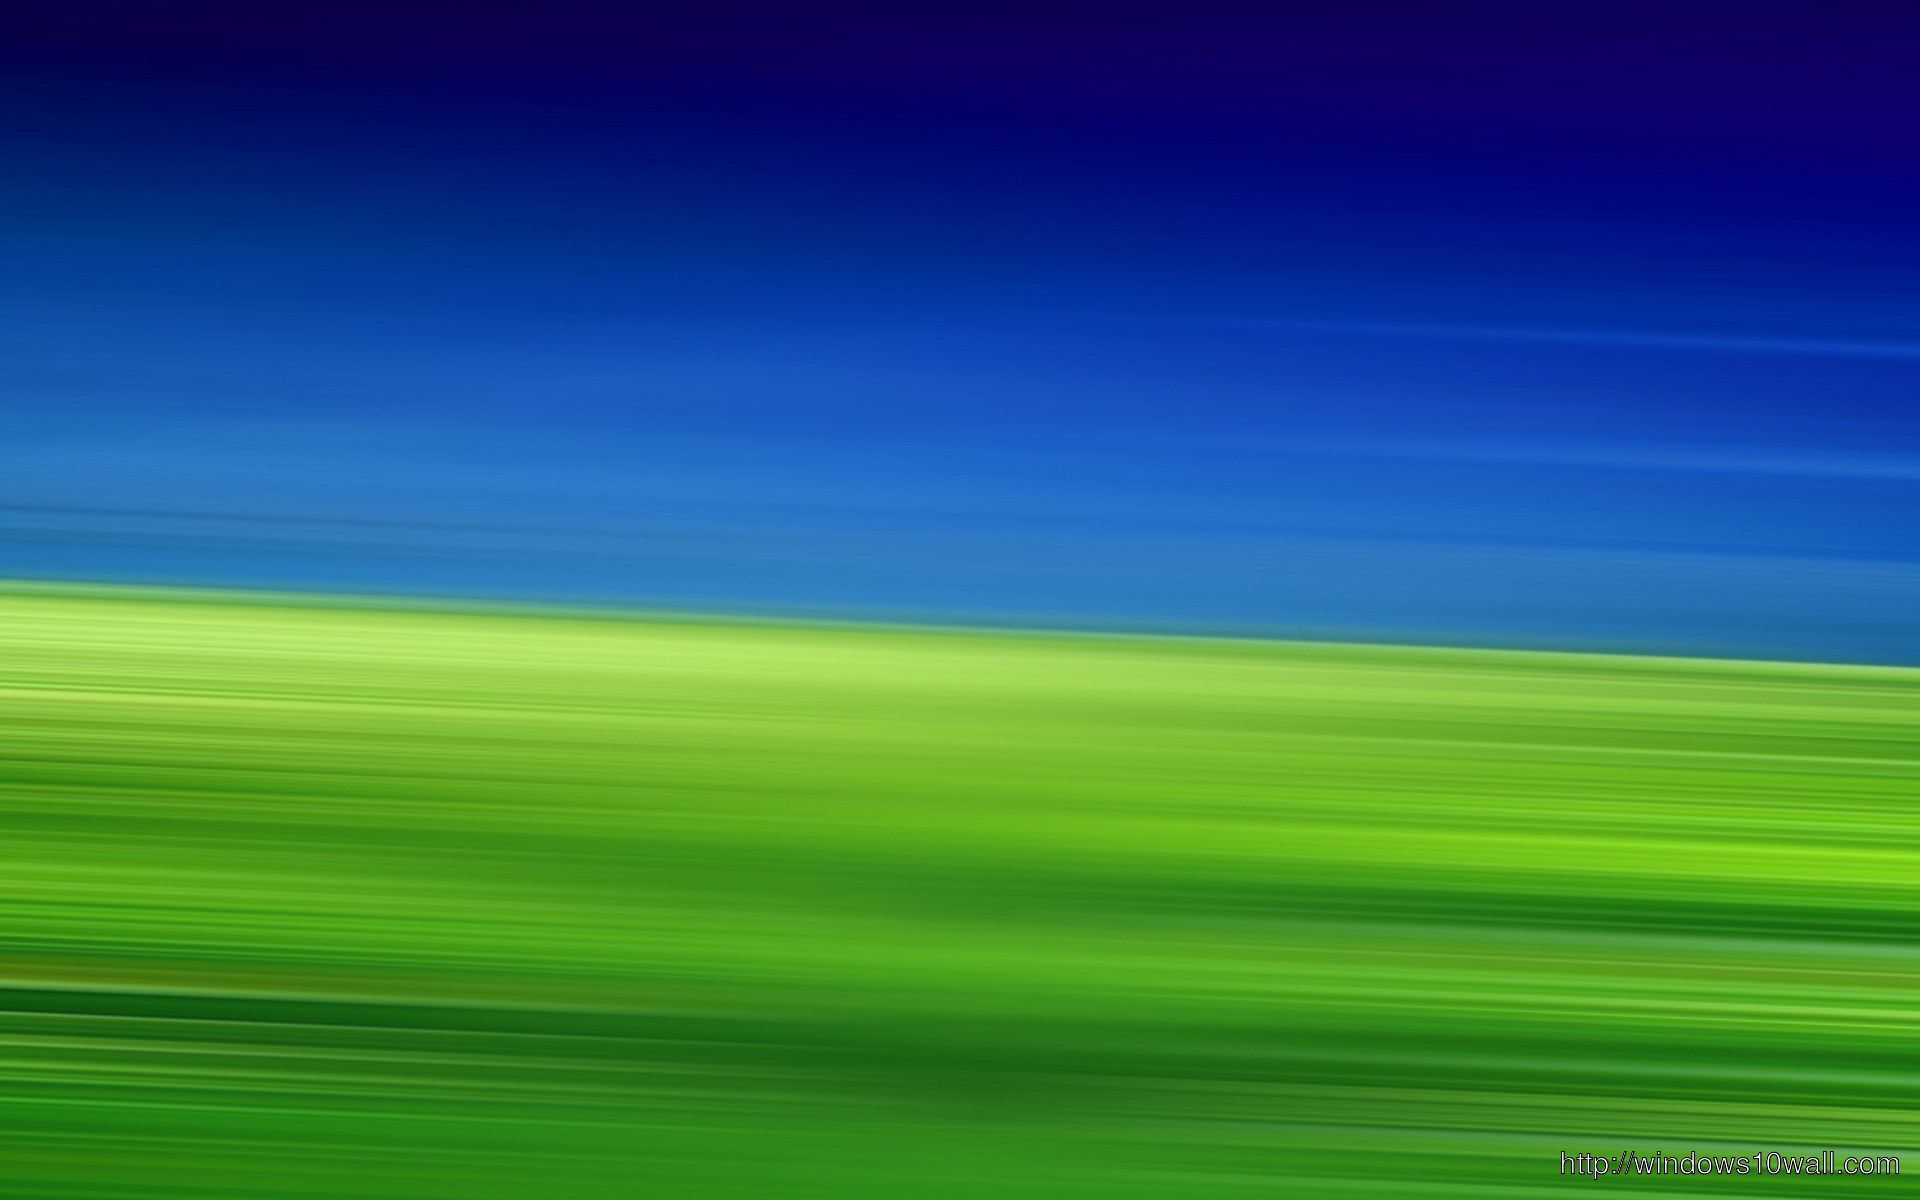 Abstract Background Wallpaper Green And Blue Windows 10 Wallpapers